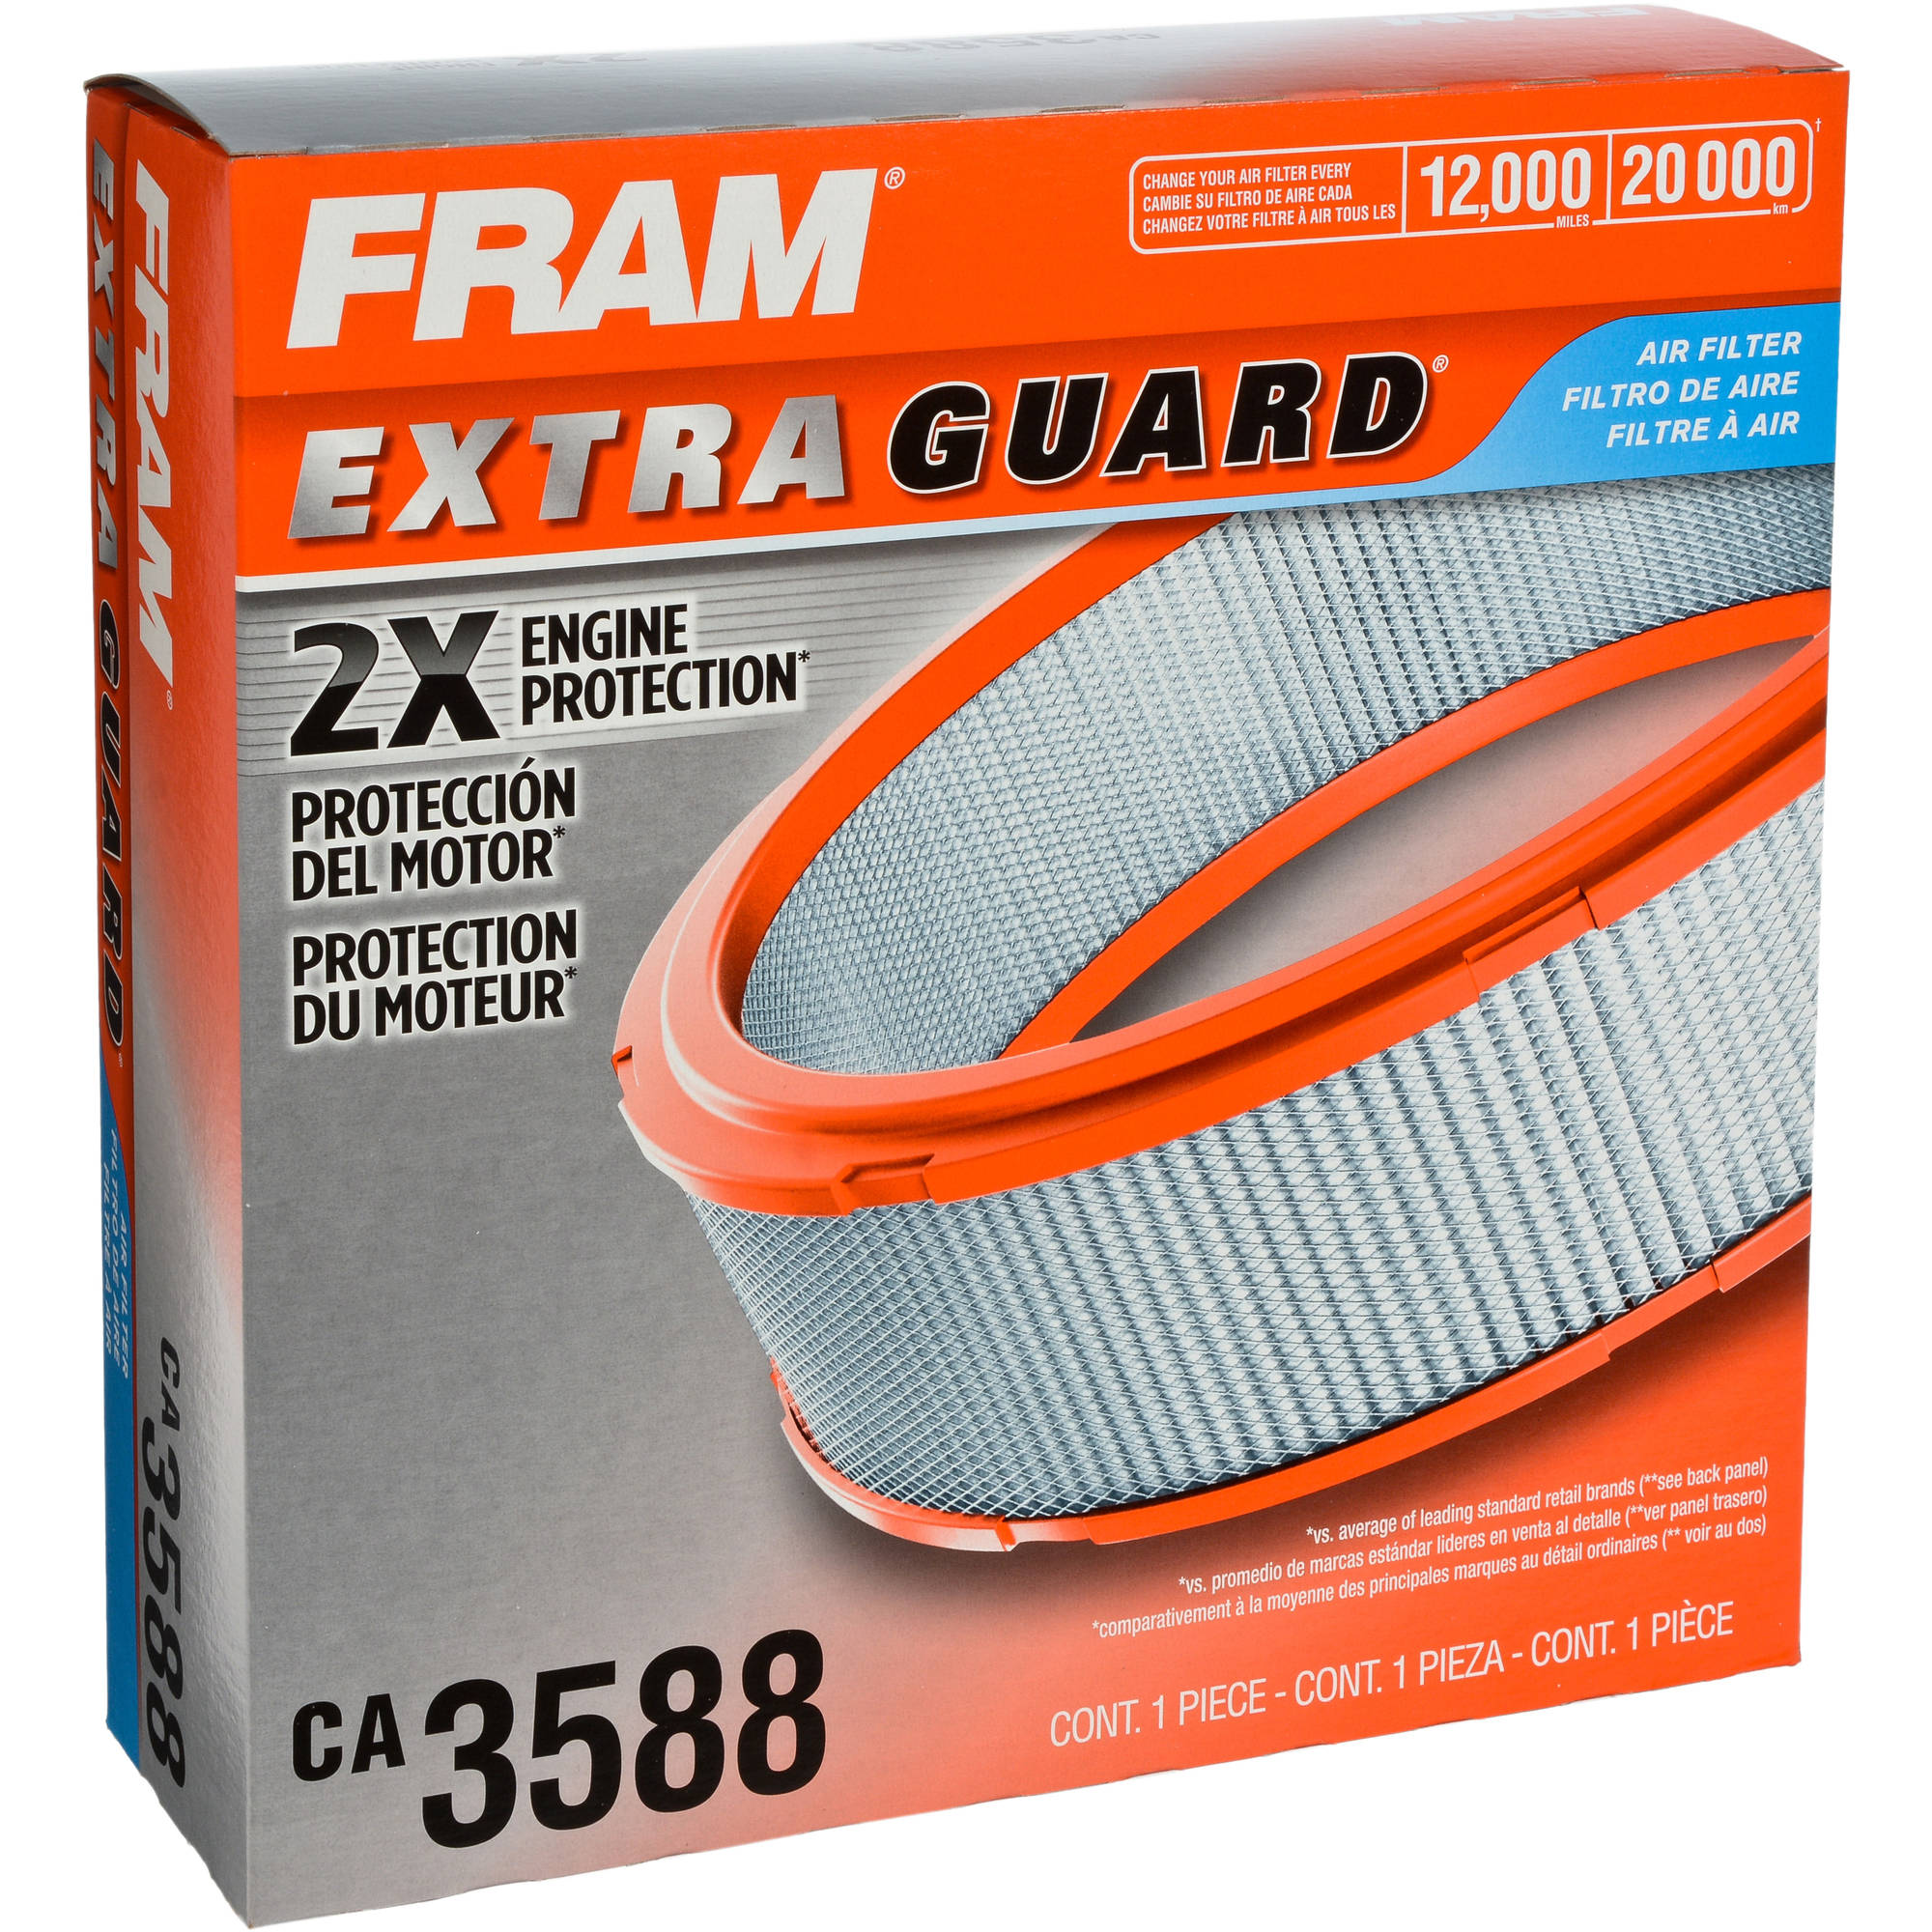 FRAM Extra Guard Air Filter, CA3588